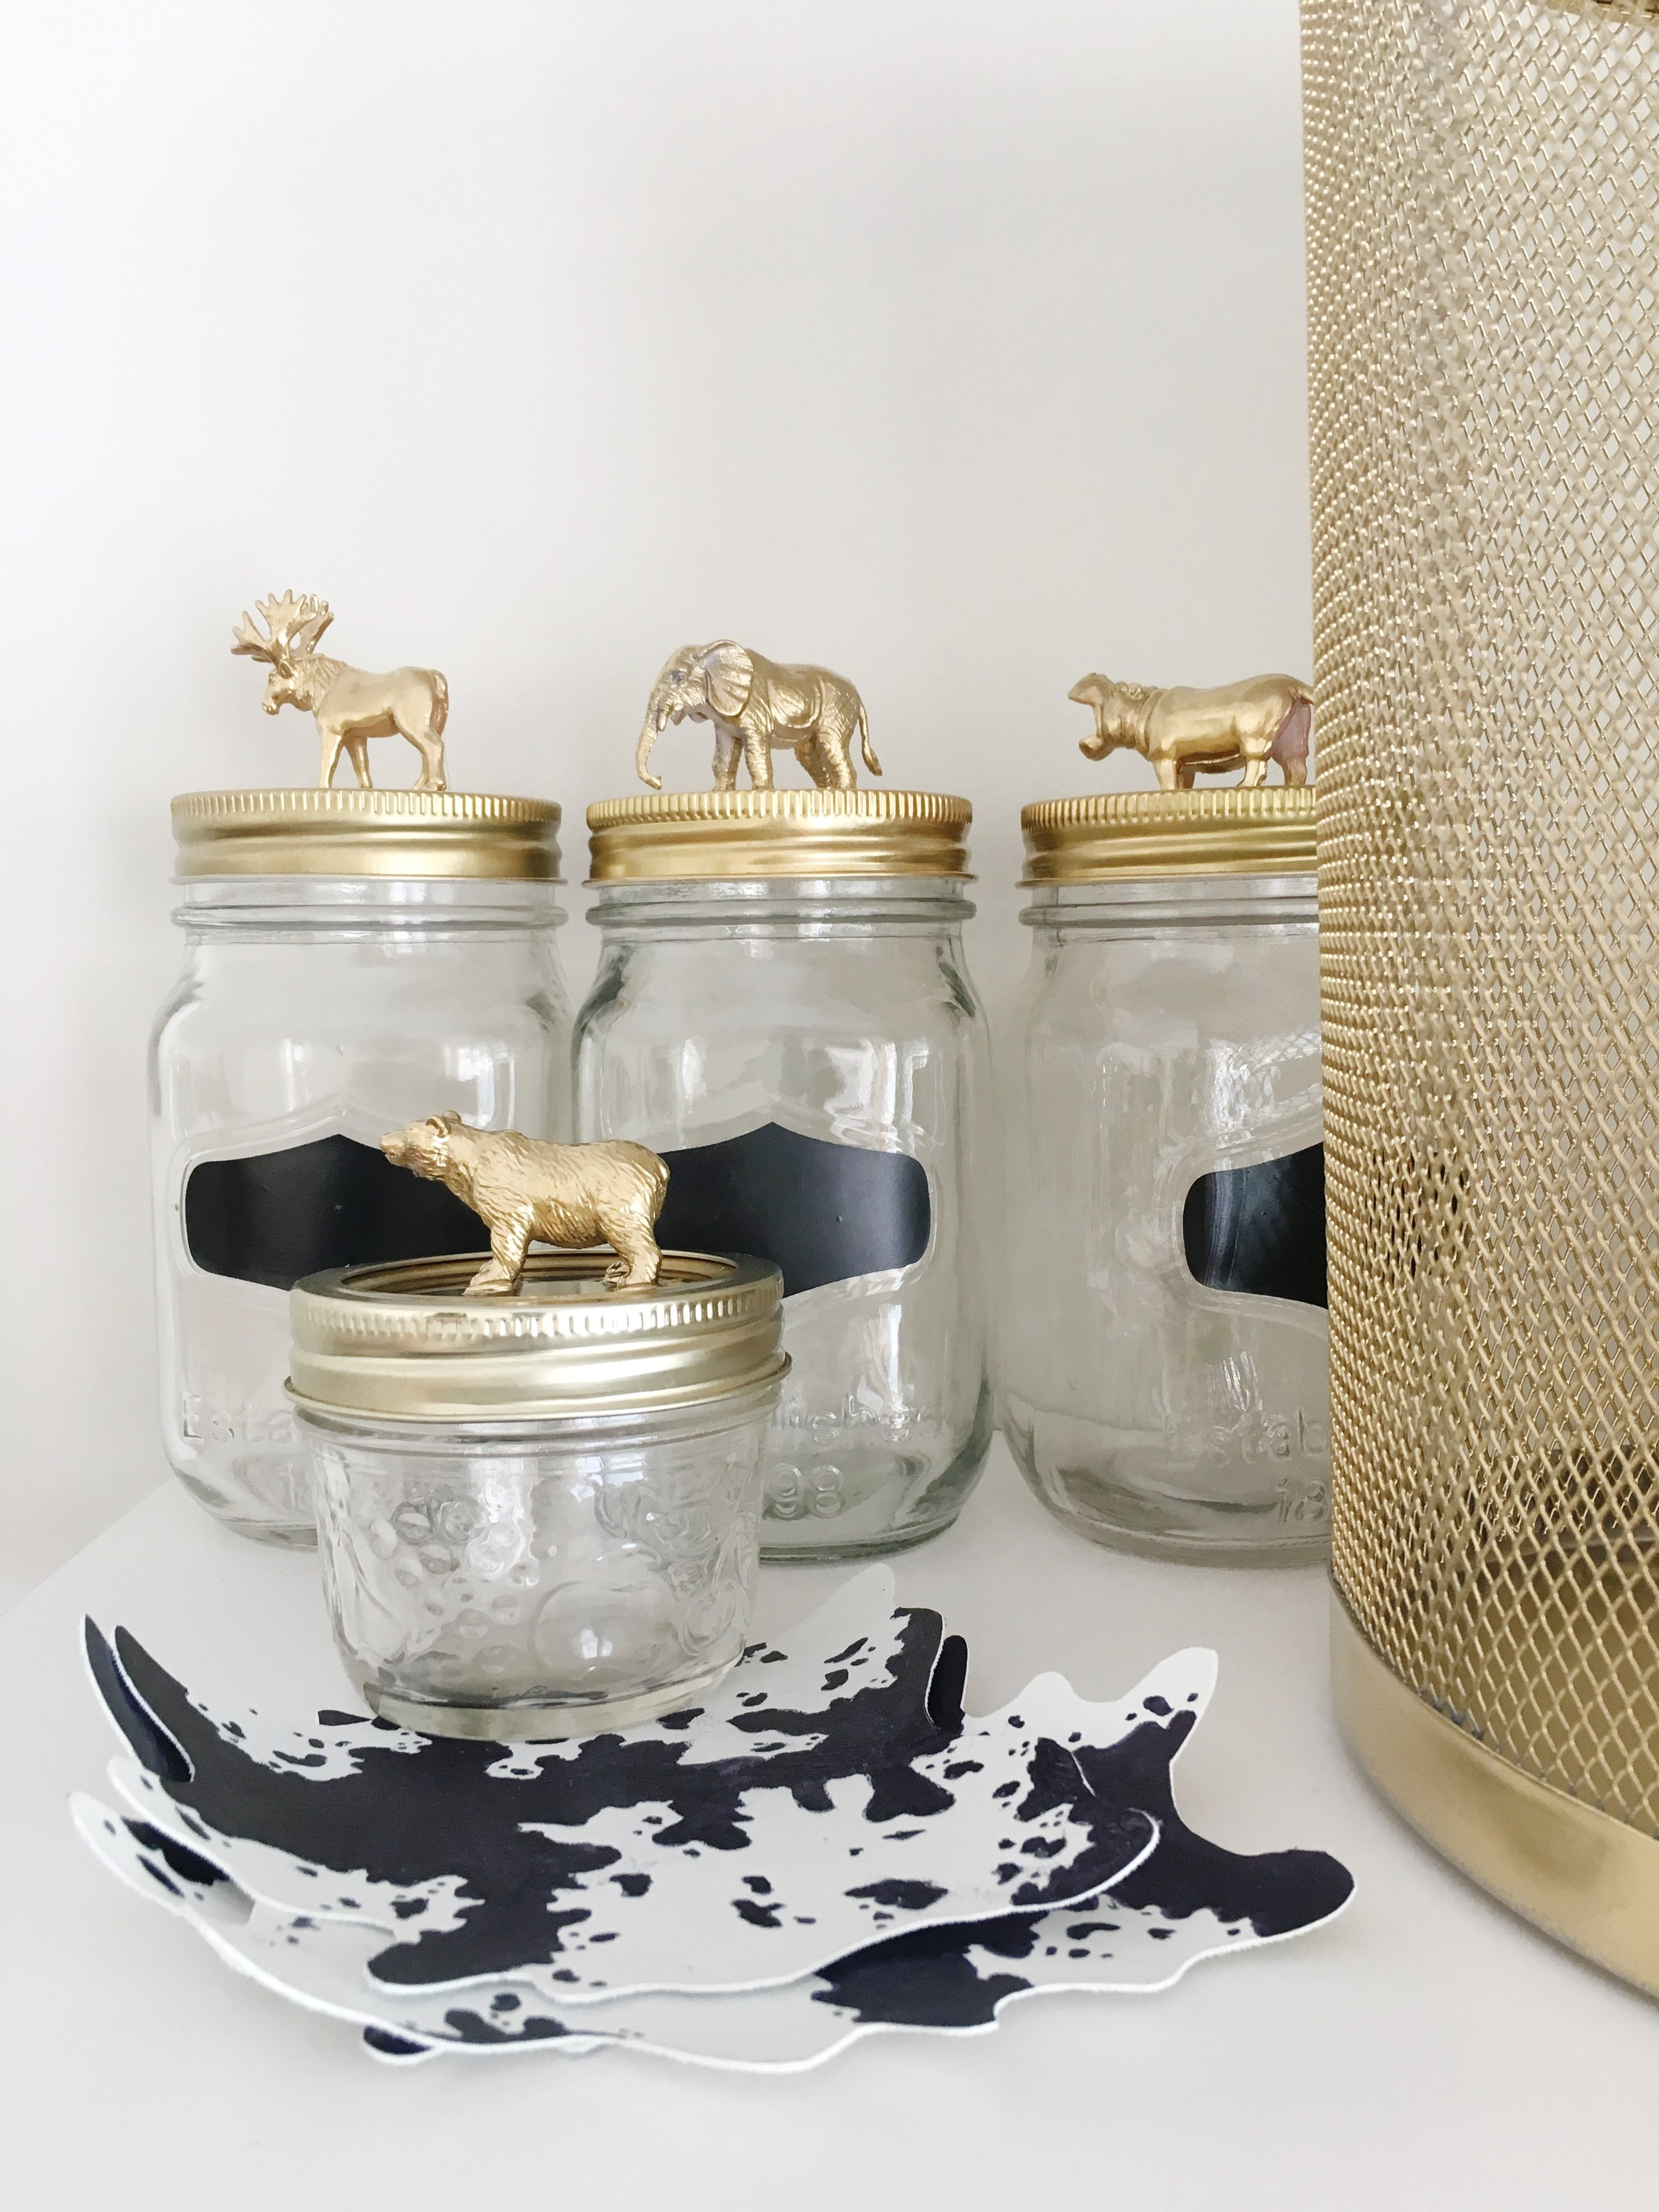 """DIY DECORATED JARS              96               Normal    0                false    false    false       EN-US    X-NONE    X-NONE                                                                                                                                                                                                                                                                                                                                                                                                                                                                                                                                                                                                                                                                                                                                                                                                                                                                                                                                                                                                                                                                                                                                                                                                                                                                                       /* Style Definitions */ table.MsoNormalTable {mso-style-name:""""Table Normal""""; mso-tstyle-rowband-size:0; mso-tstyle-colband-size:0; mso-style-noshow:yes; mso-style-priority:99; mso-style-parent:""""""""; mso-padding-alt:0cm 5.4pt 0cm 5.4pt; mso-para-margin:0cm; mso-para-margin-bottom:.0001pt; mso-pagination:widow-orphan; font-size:12.0pt; font-family:Calibri; mso-ascii-font-family:Calibri; mso-ascii-theme-font:minor-latin; mso-hansi-font-family:Calibri; mso-hansi-theme-font:minor-latin;}      Materials:  - Mason Jars, any size - Drop Cloth - Strong Glue (Super or Hot Glue) - Figurines - Spray Paint  Steps:  1. Remove lid (includi"""